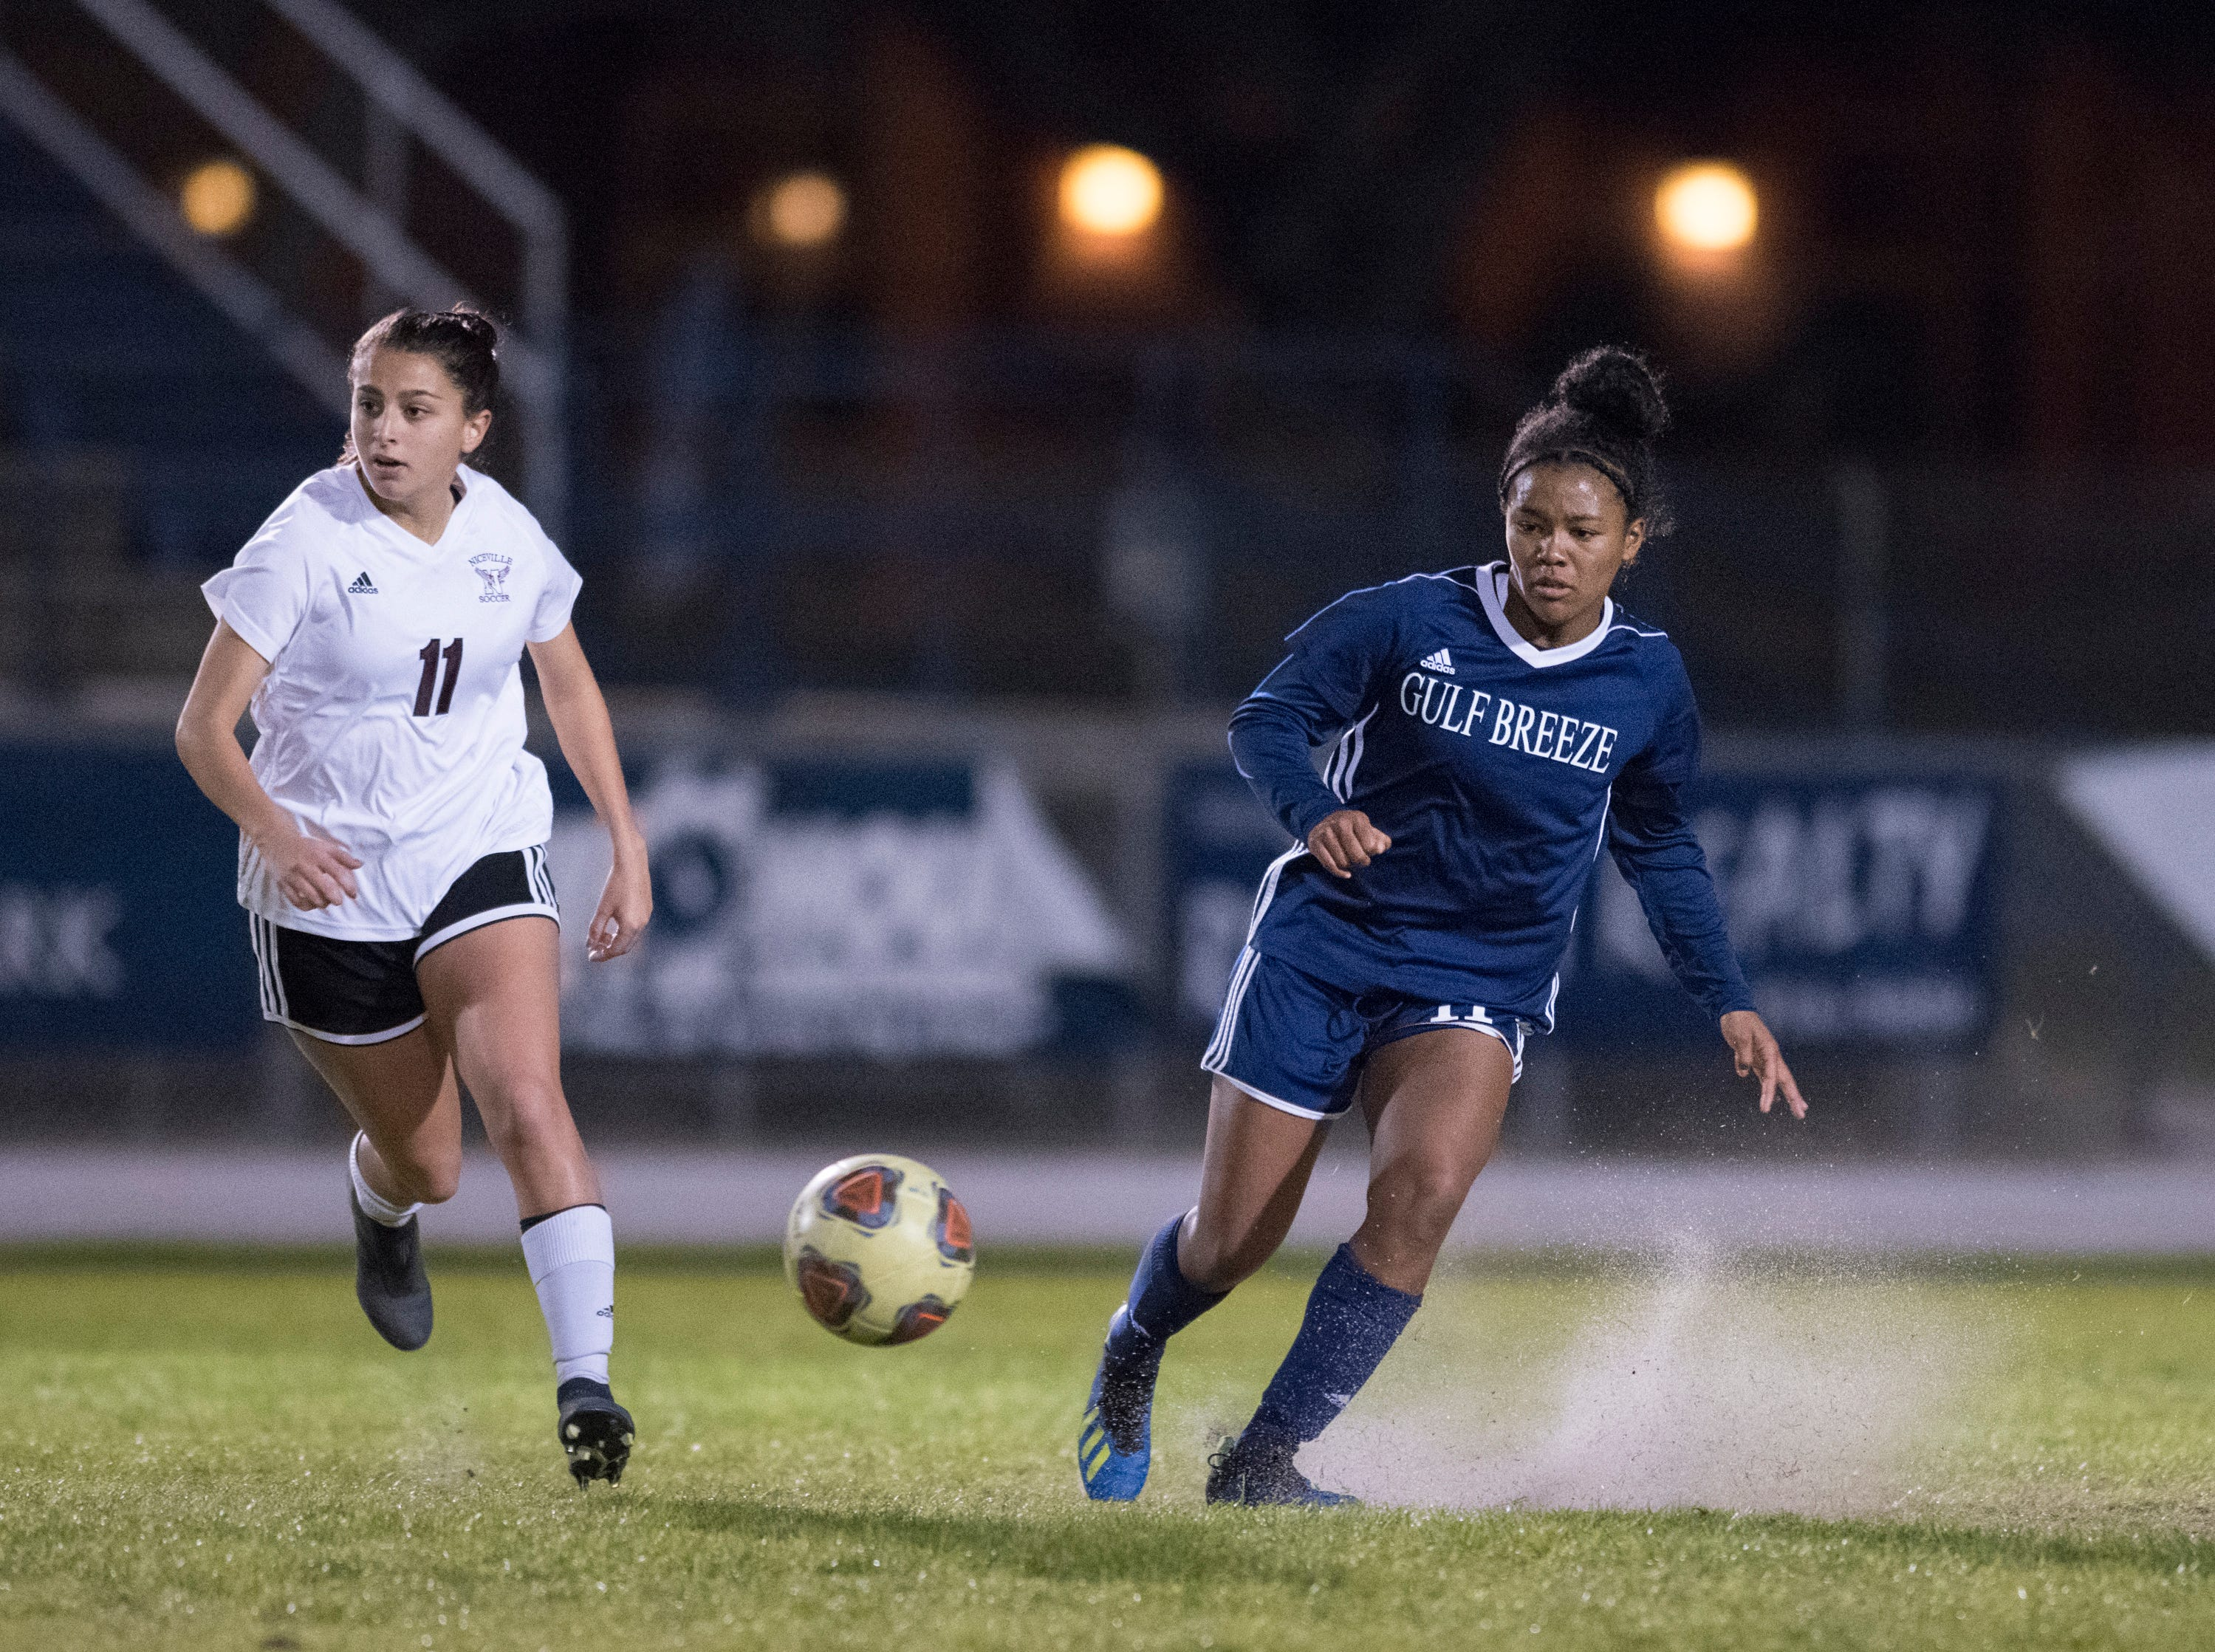 Mya Swinton (11) passes the ball during the Niceville vs Gulf Breeze soccer game at Gulf Breeze High School on Thursday, January 10, 2019.